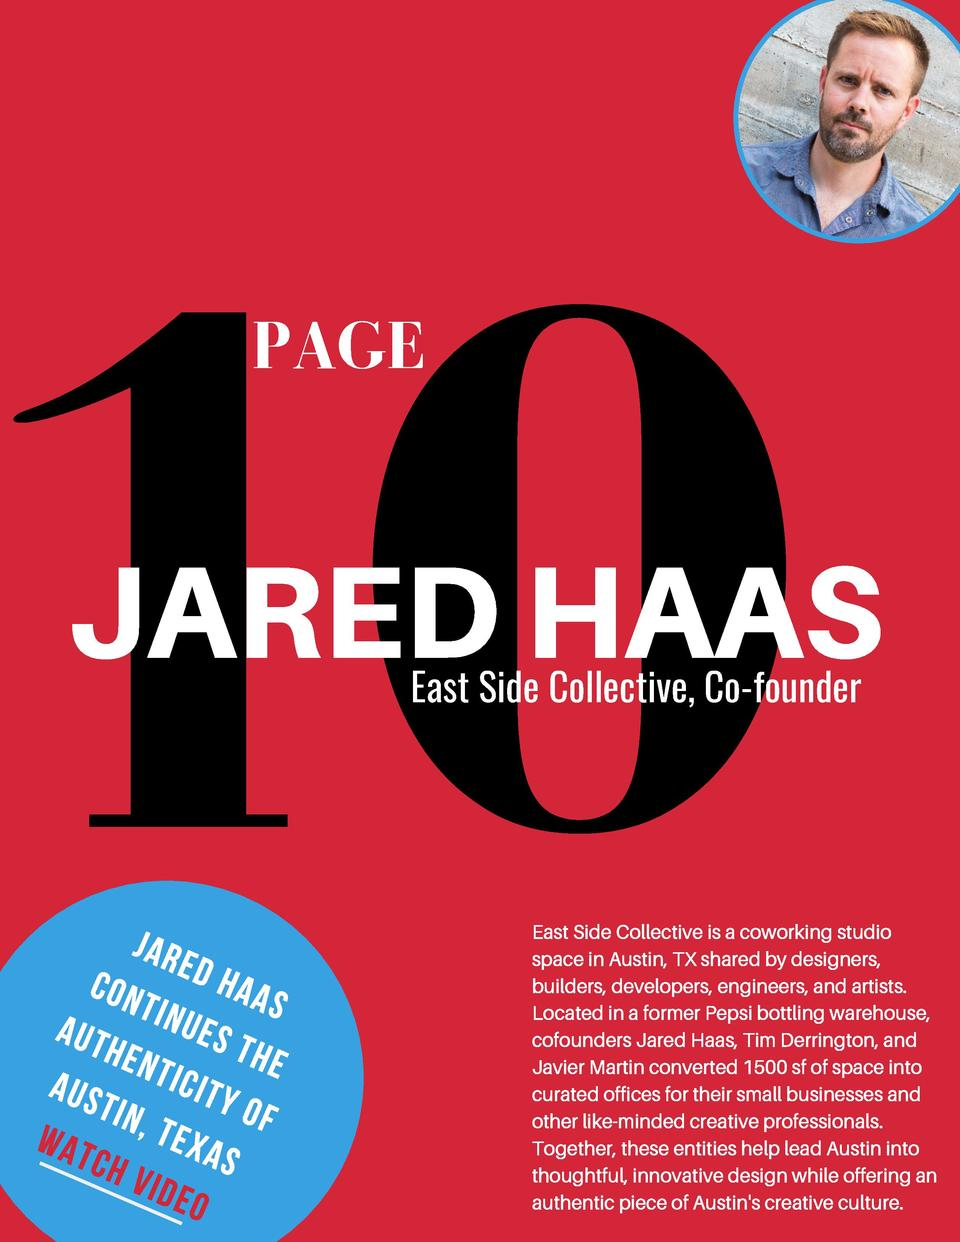 10 PAGE  JARED HAAS East Side Collective, Co-founder  JARE CON D HAAS T AUTH INUES T HE ENTI CITY AUS TIN, O F T WAT E CH ...